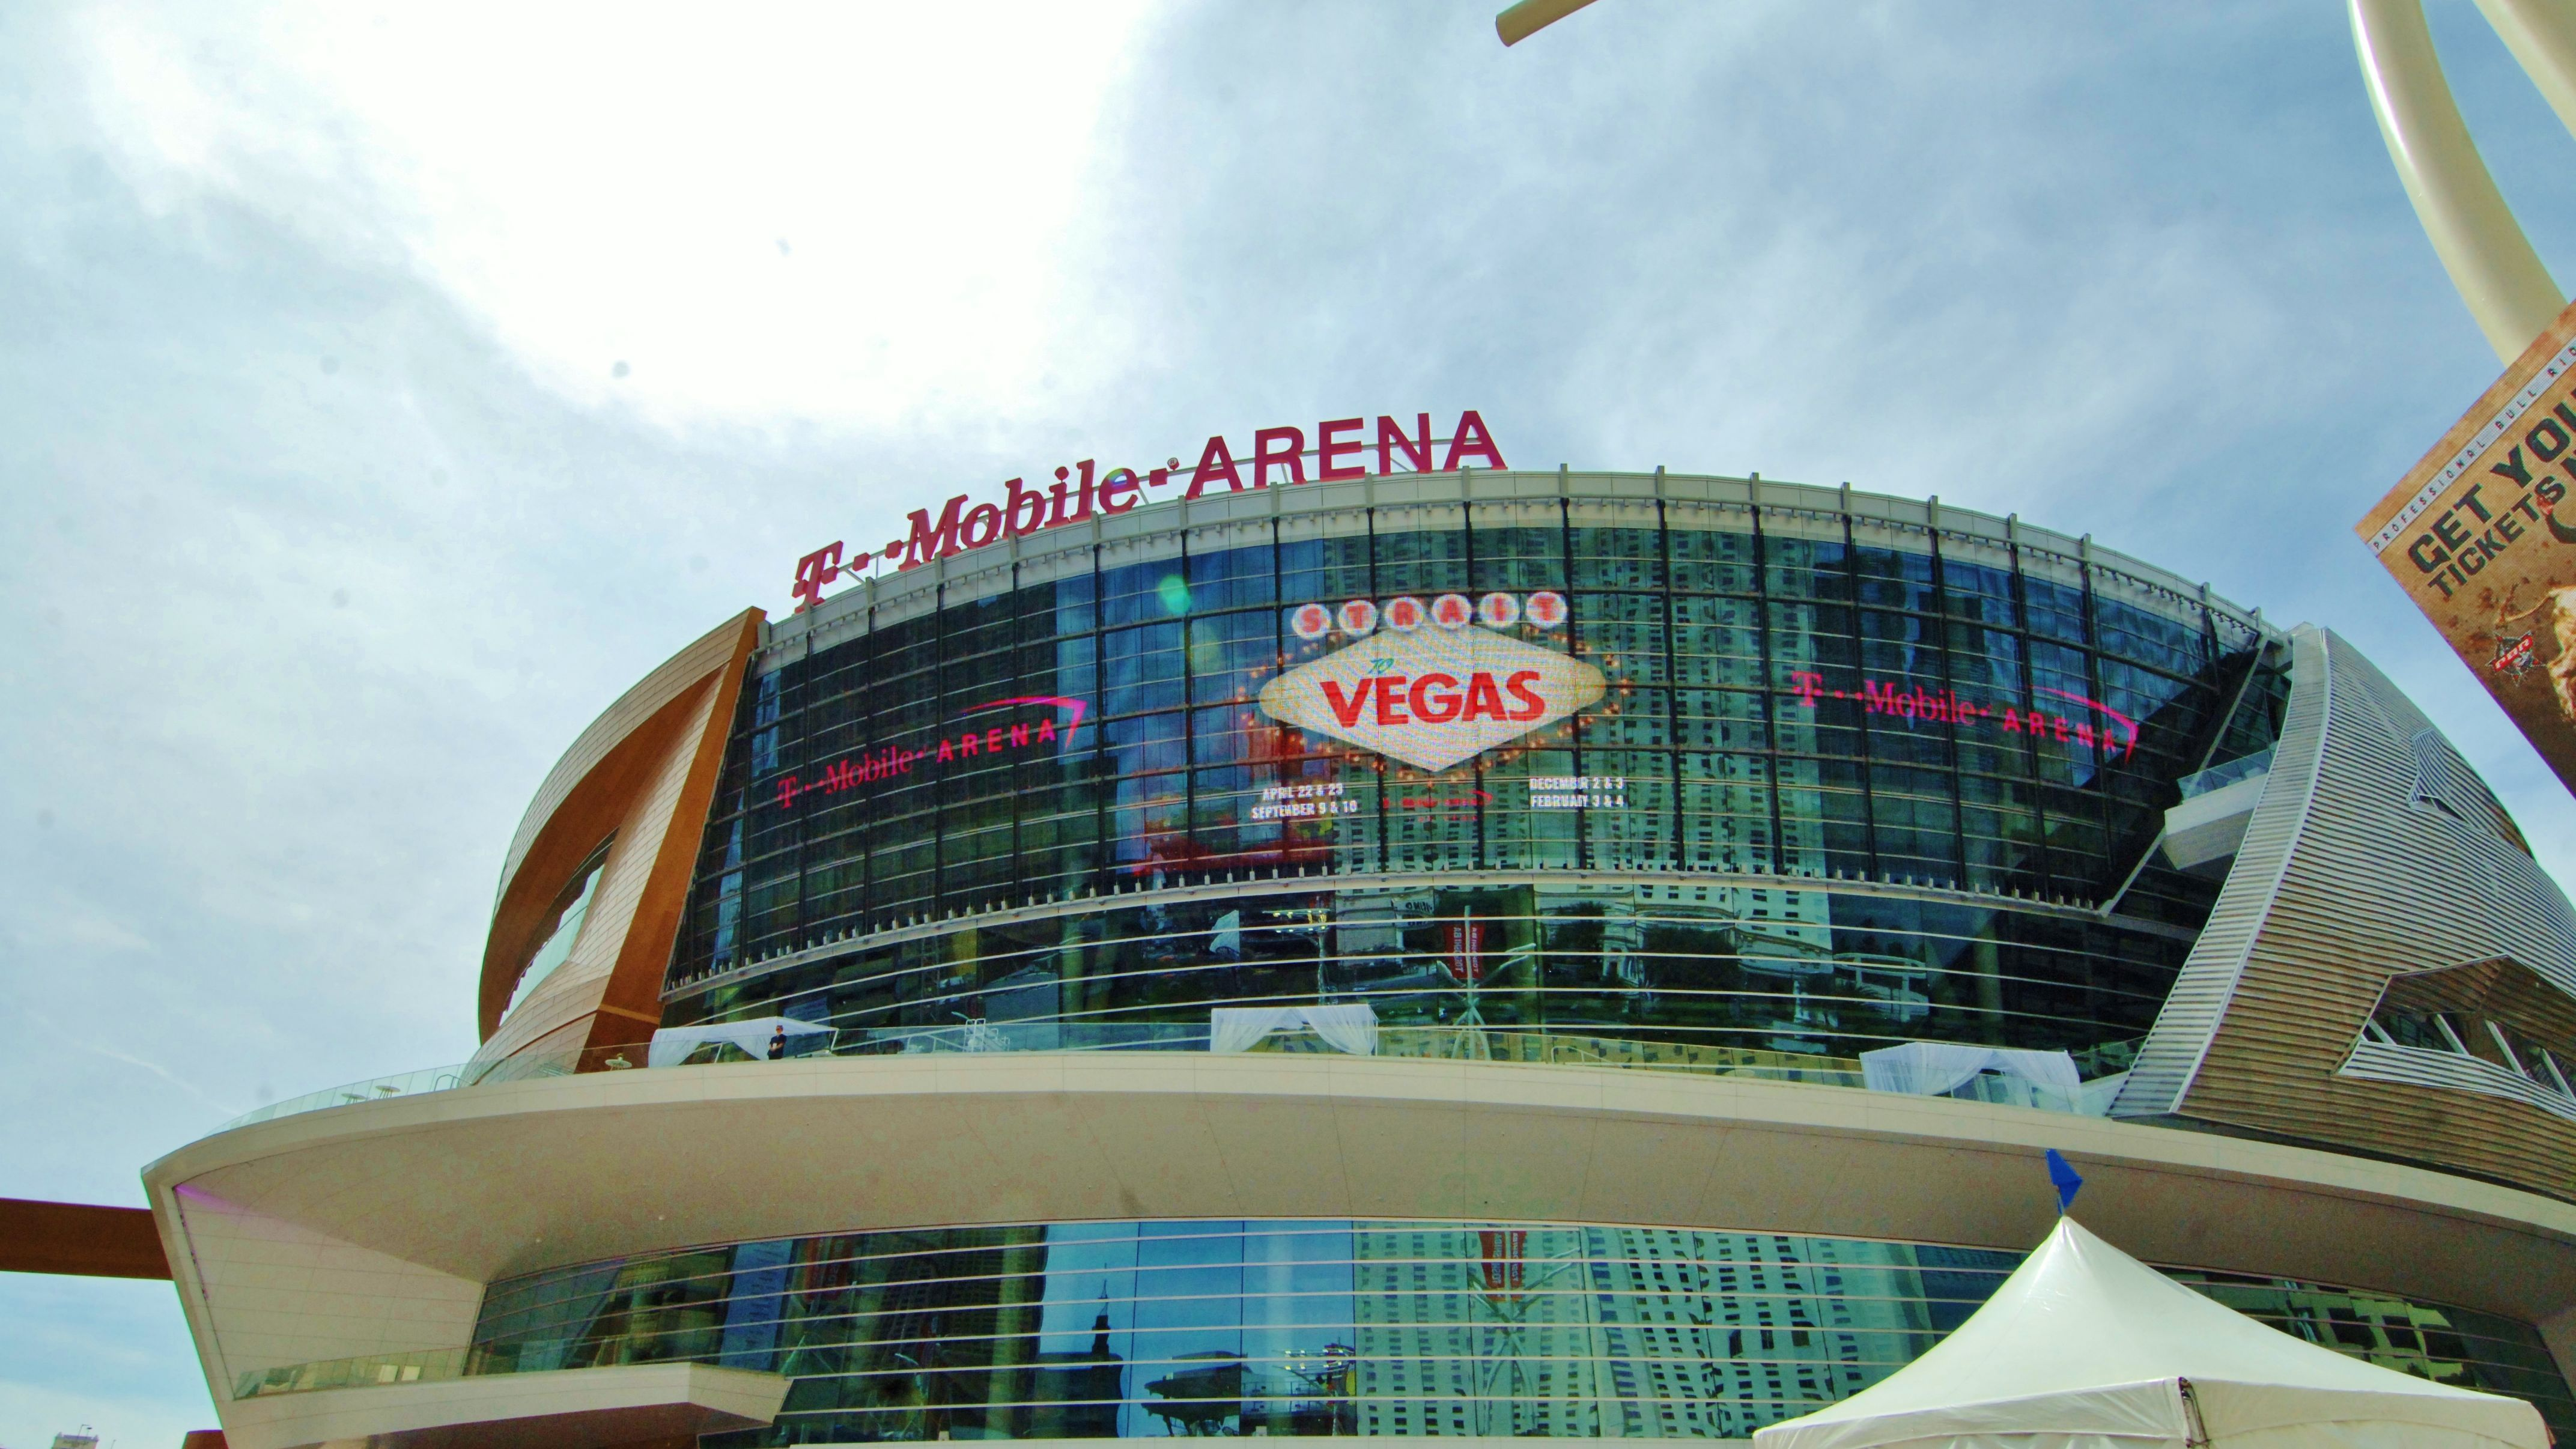 The Ultimate Guide To Golden Knights Hockey In Las Vegas